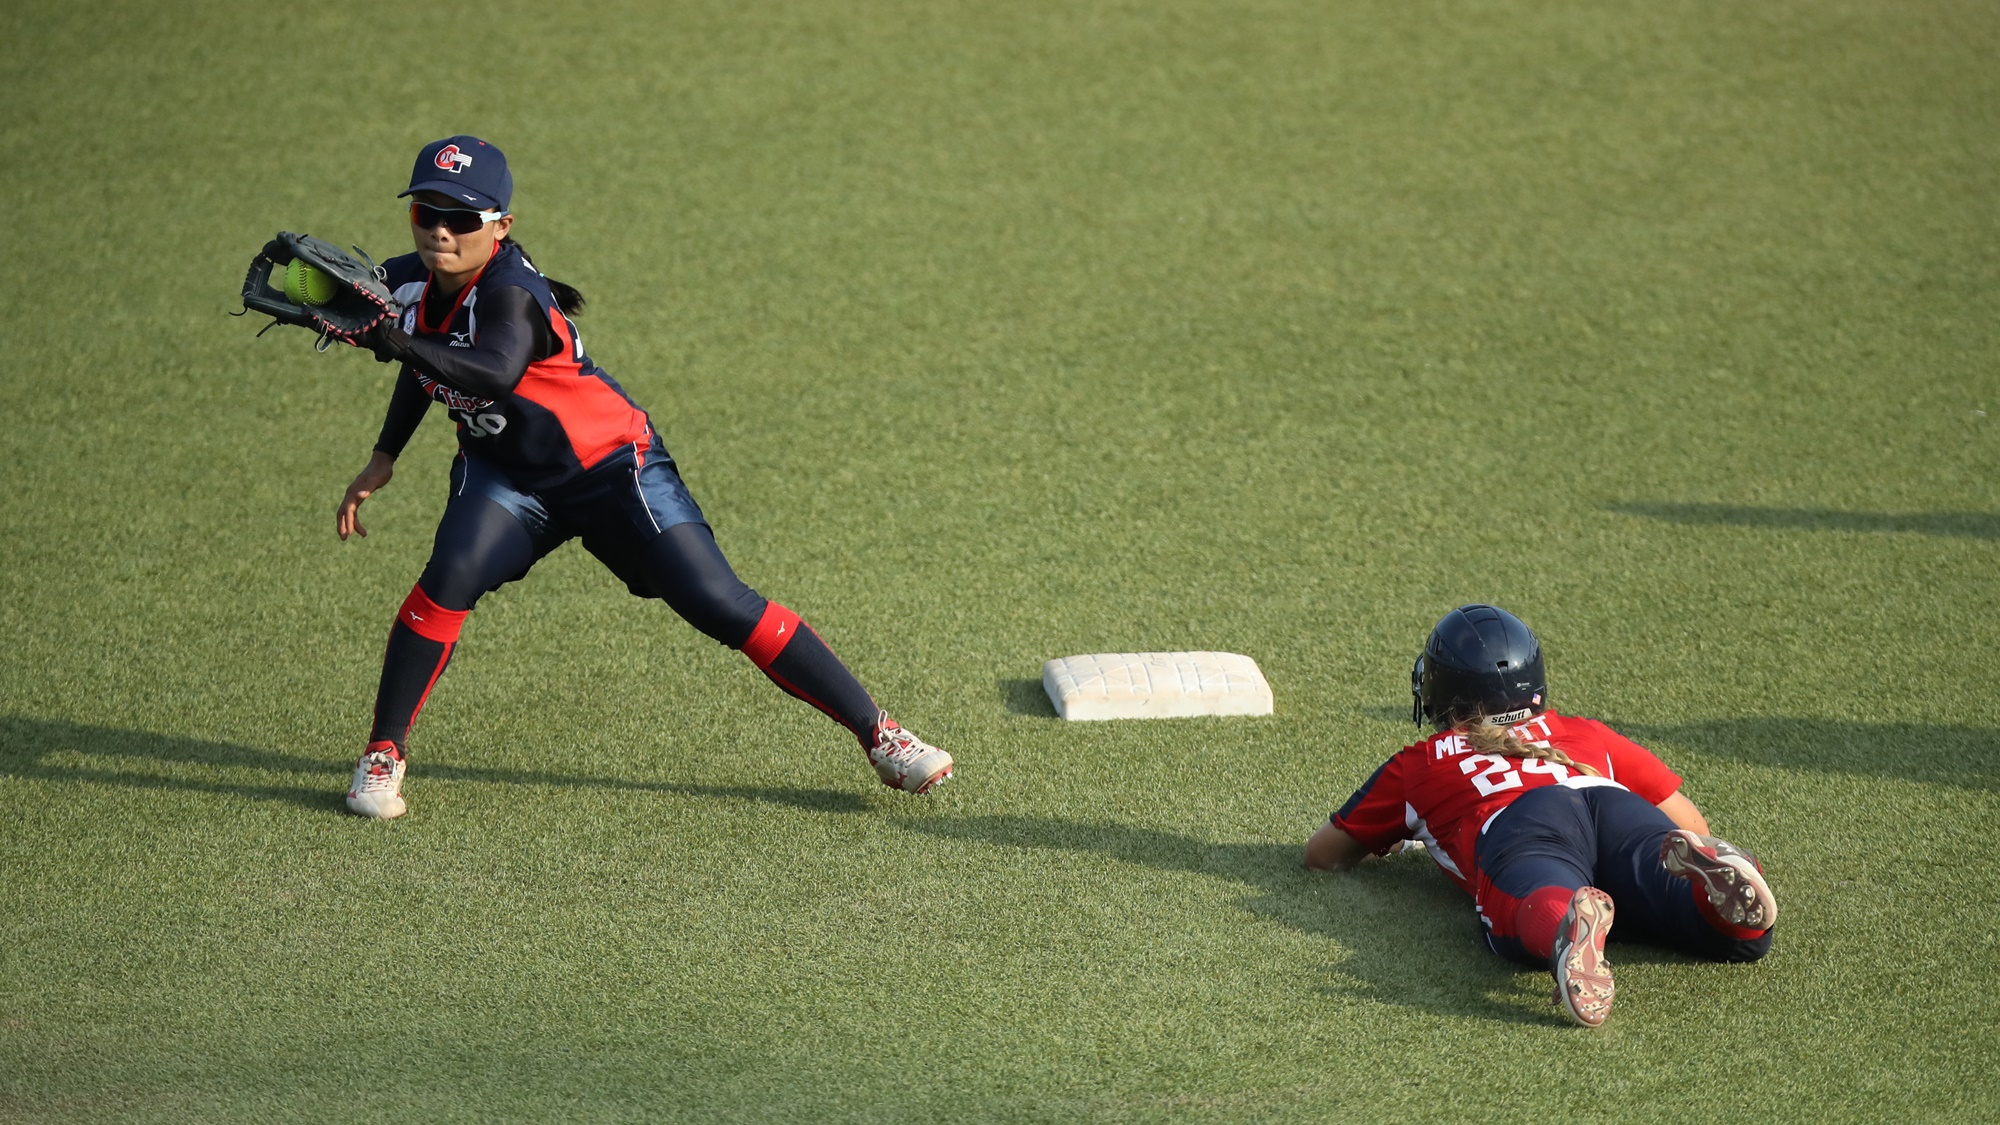 Kristi Merrit stoles second base in USA's victory over Chinese Taipei